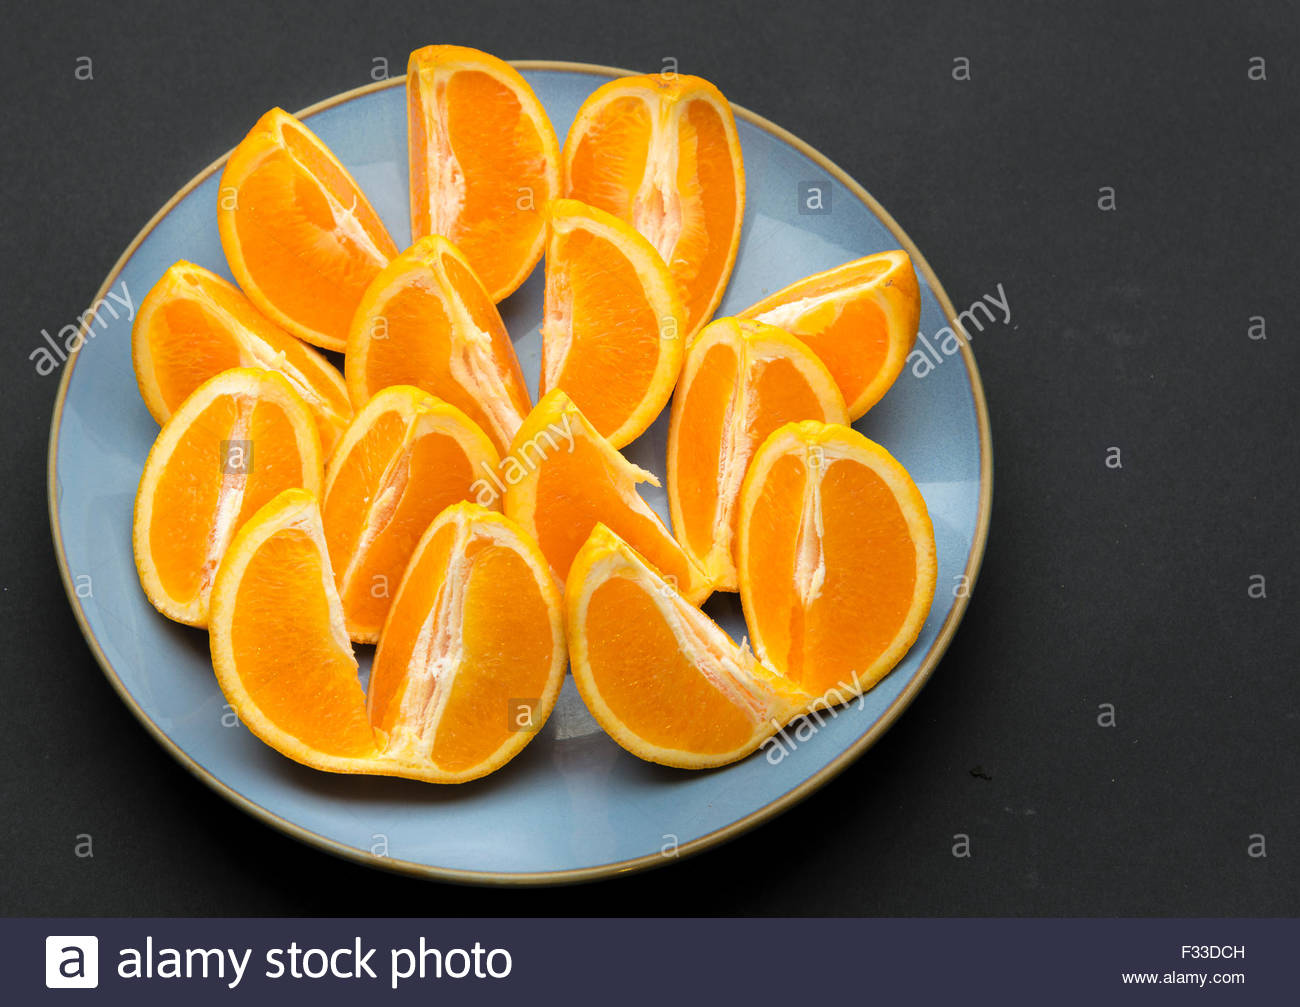 Quarter cut and unpeeled pieces of orange fruit arranged on a round blue plate in black background. - Stock Image